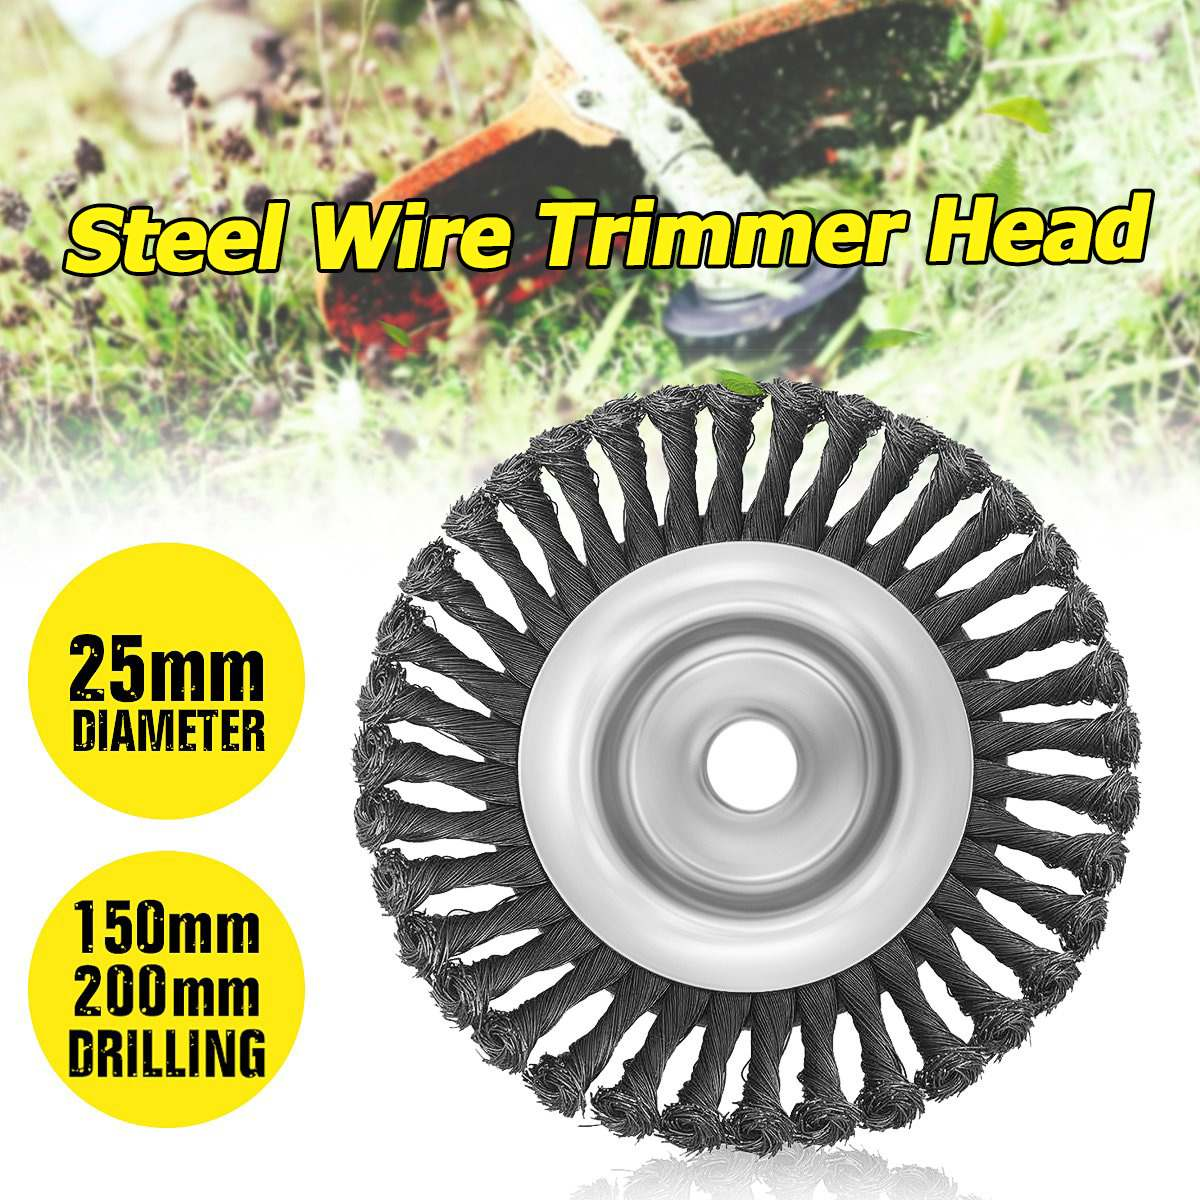 6/8 Inch Grass Trimmer Head Steel Wire Trimming Head Rusting Brush Cutter Mower Wire Weeding Head For Lawn Mower